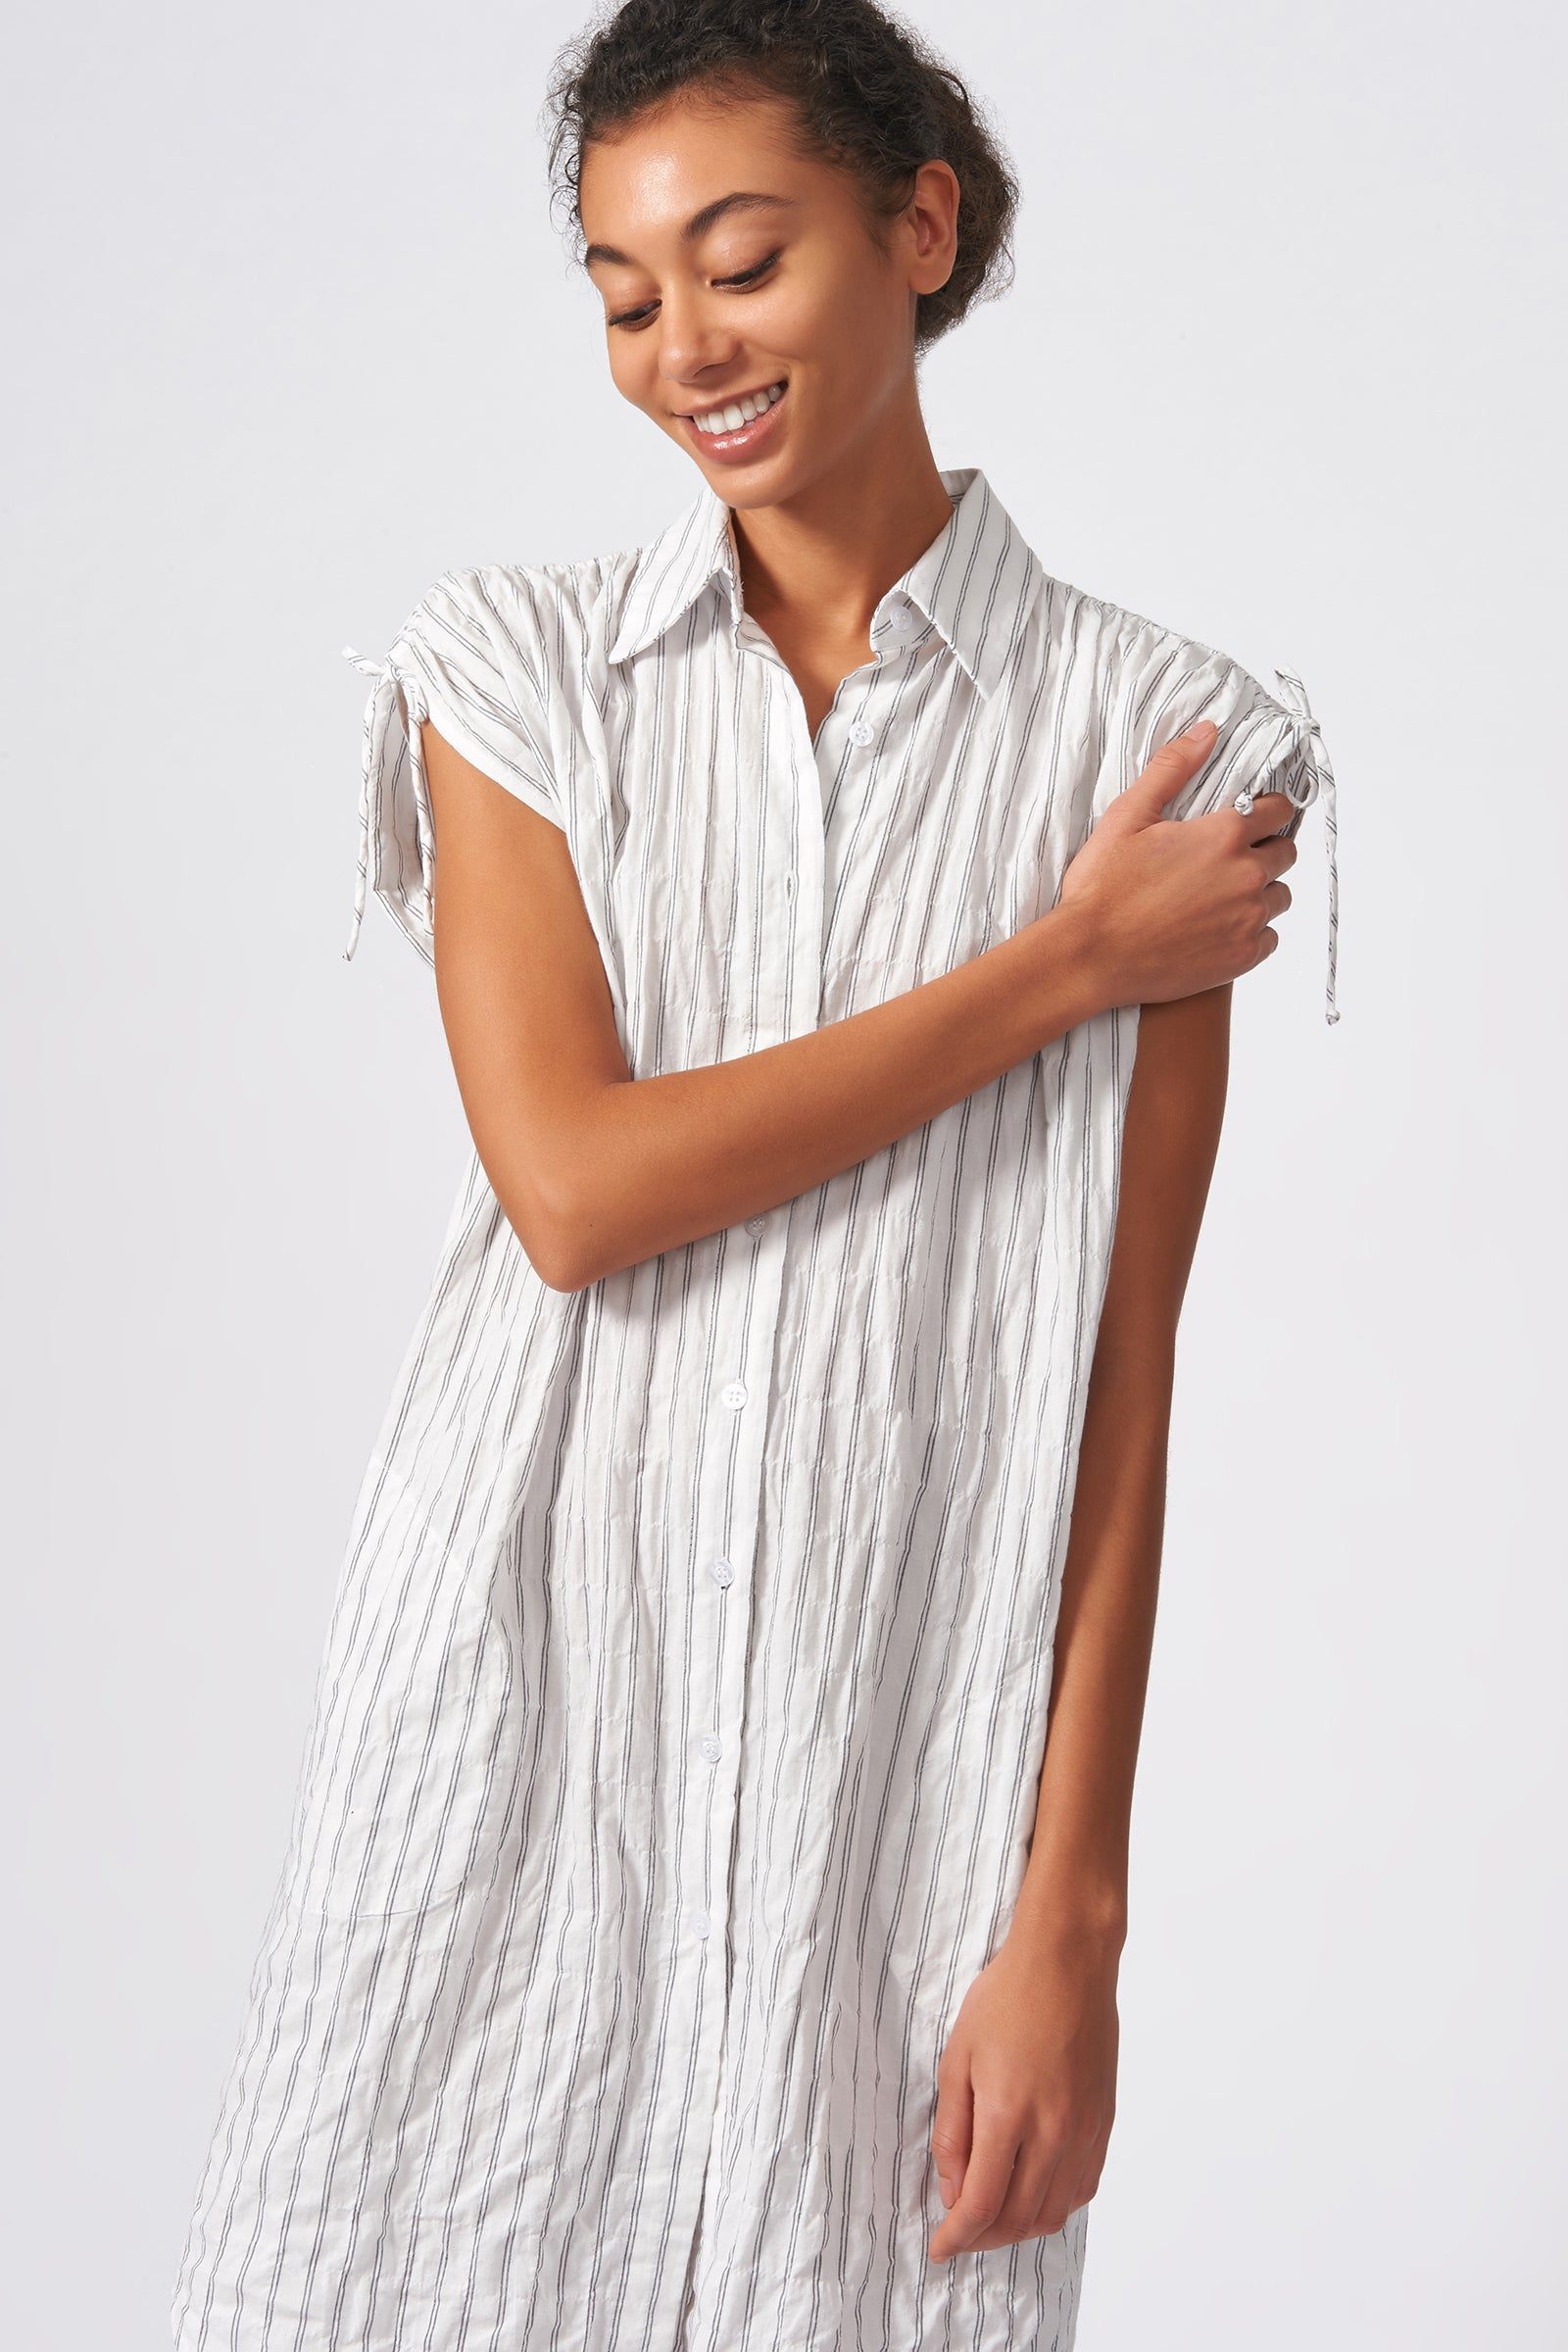 Kal Rieman Gathered Shoulder Dress in Black Stripe on Model Front Close-up View